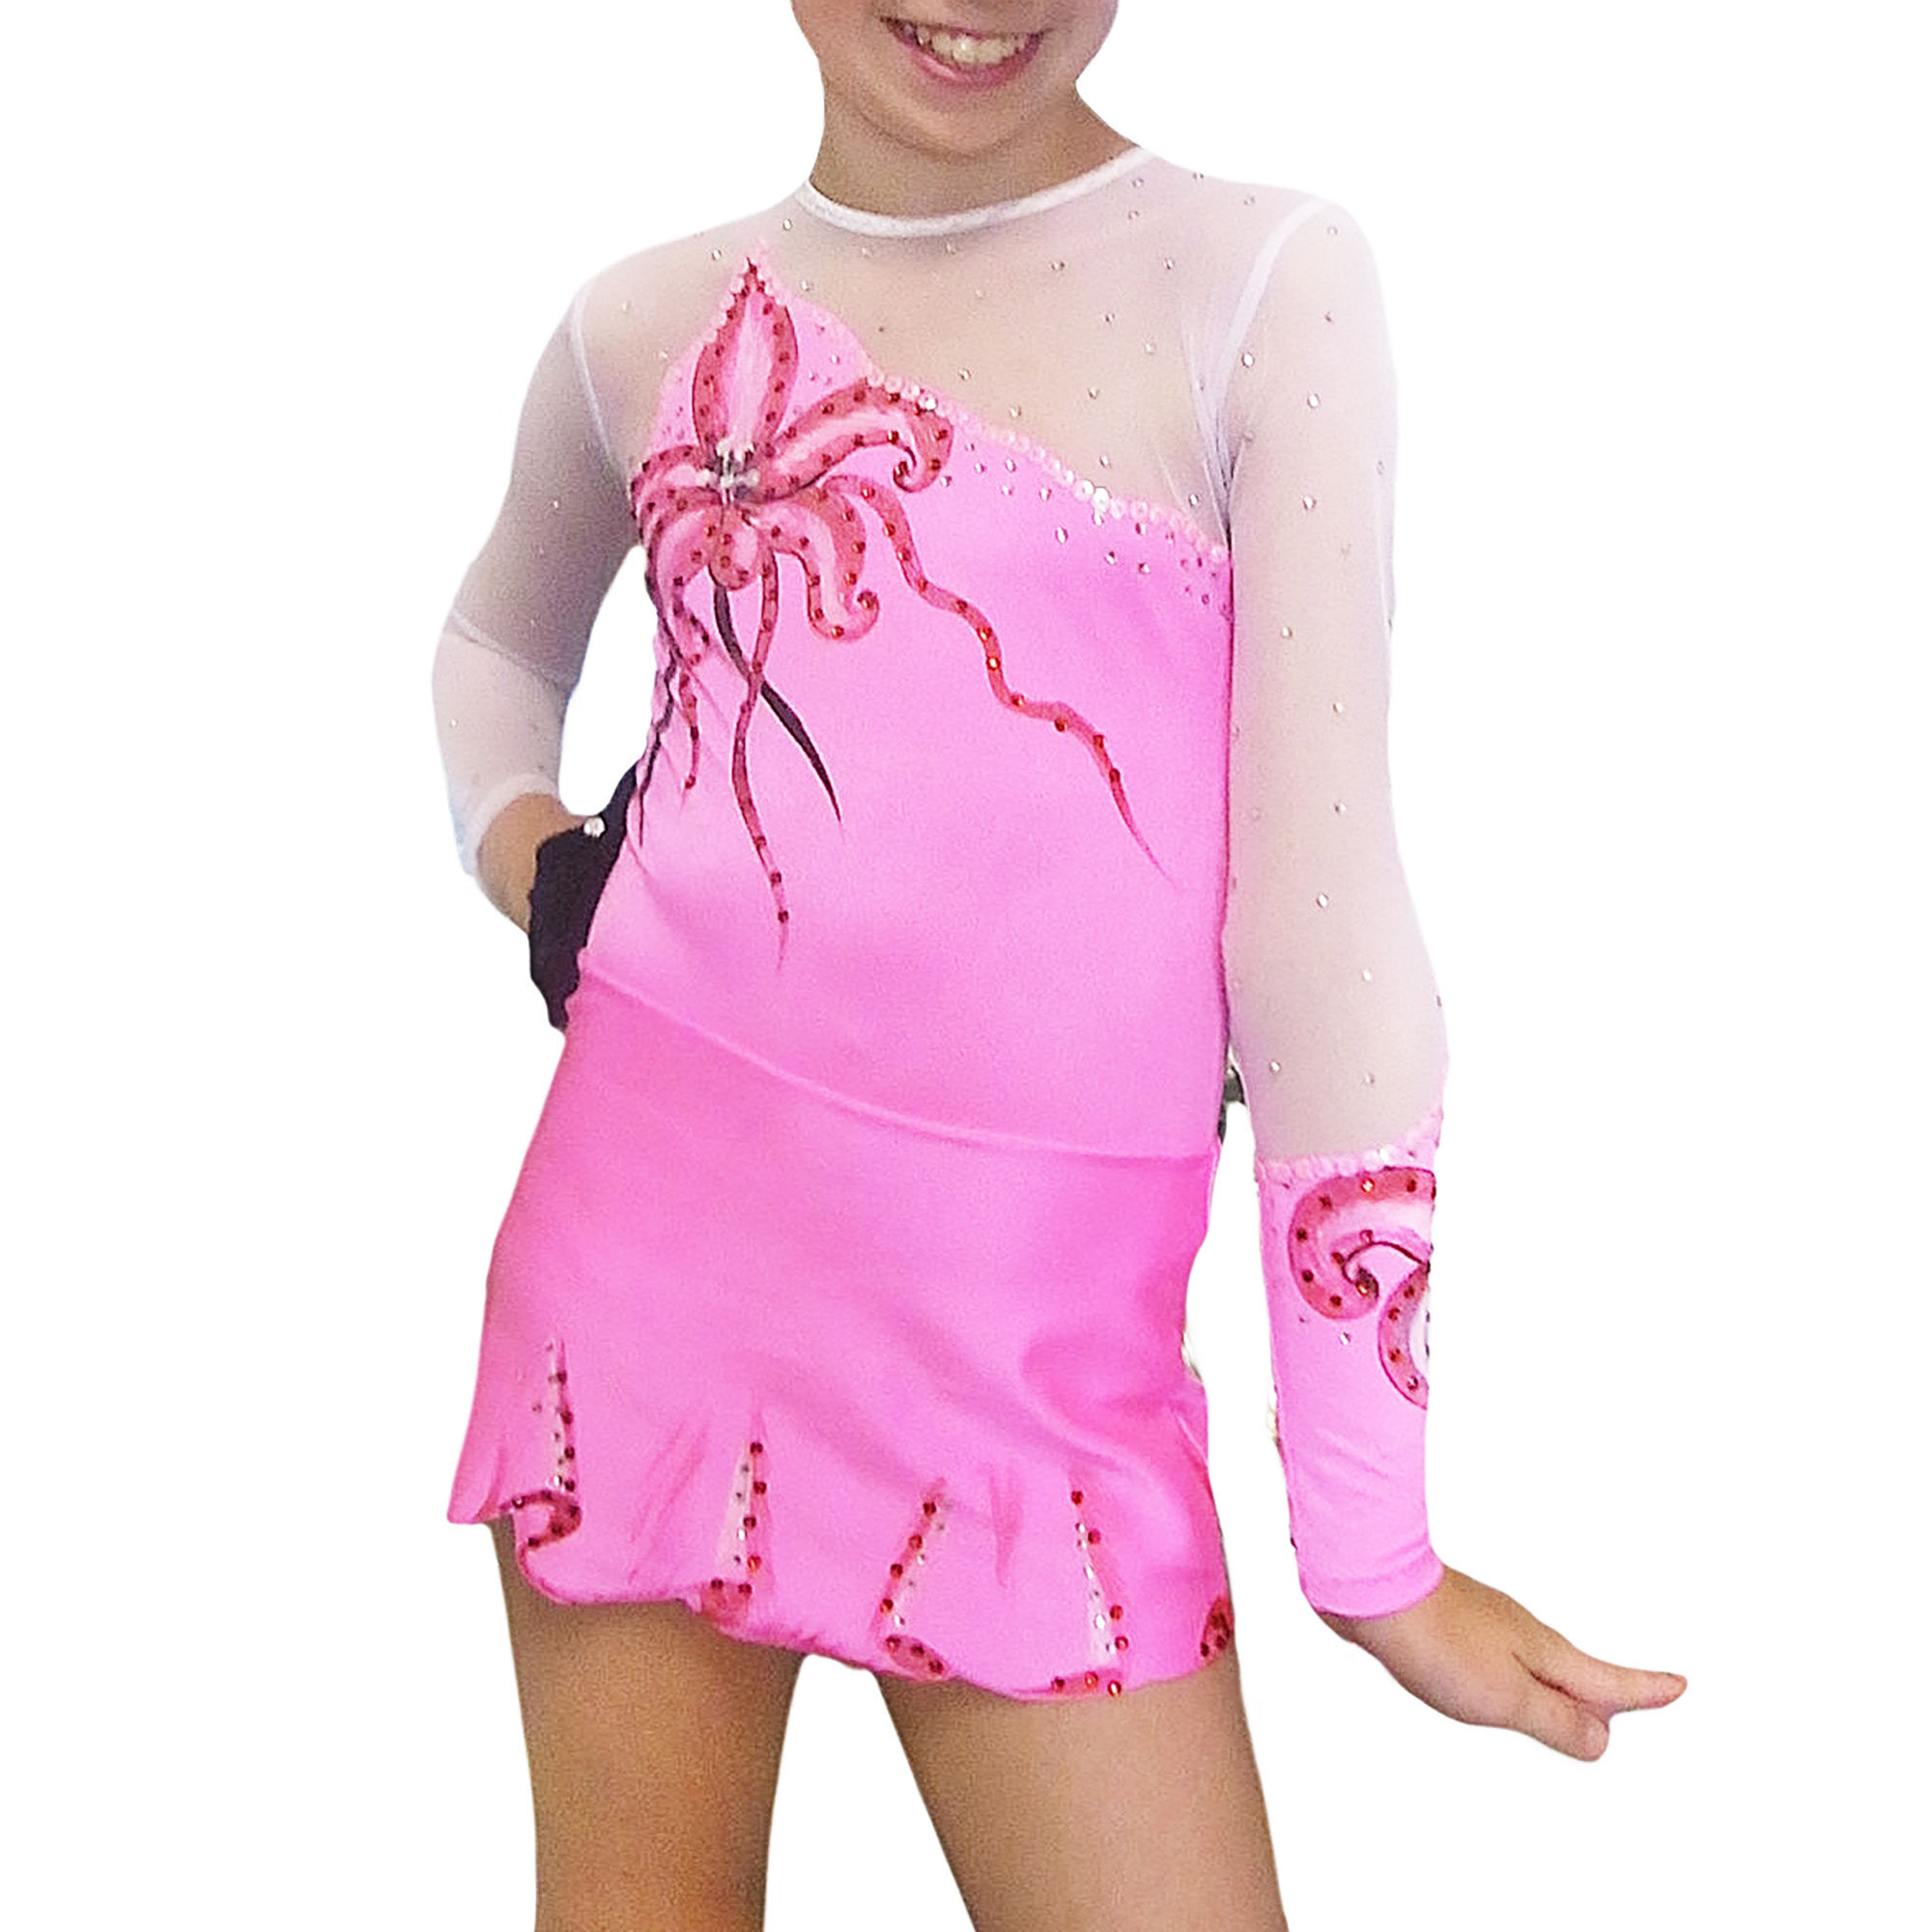 Rose Rhythmic Gymnastics Leotard 51 made by gymnast's measurements for trainings and competitions